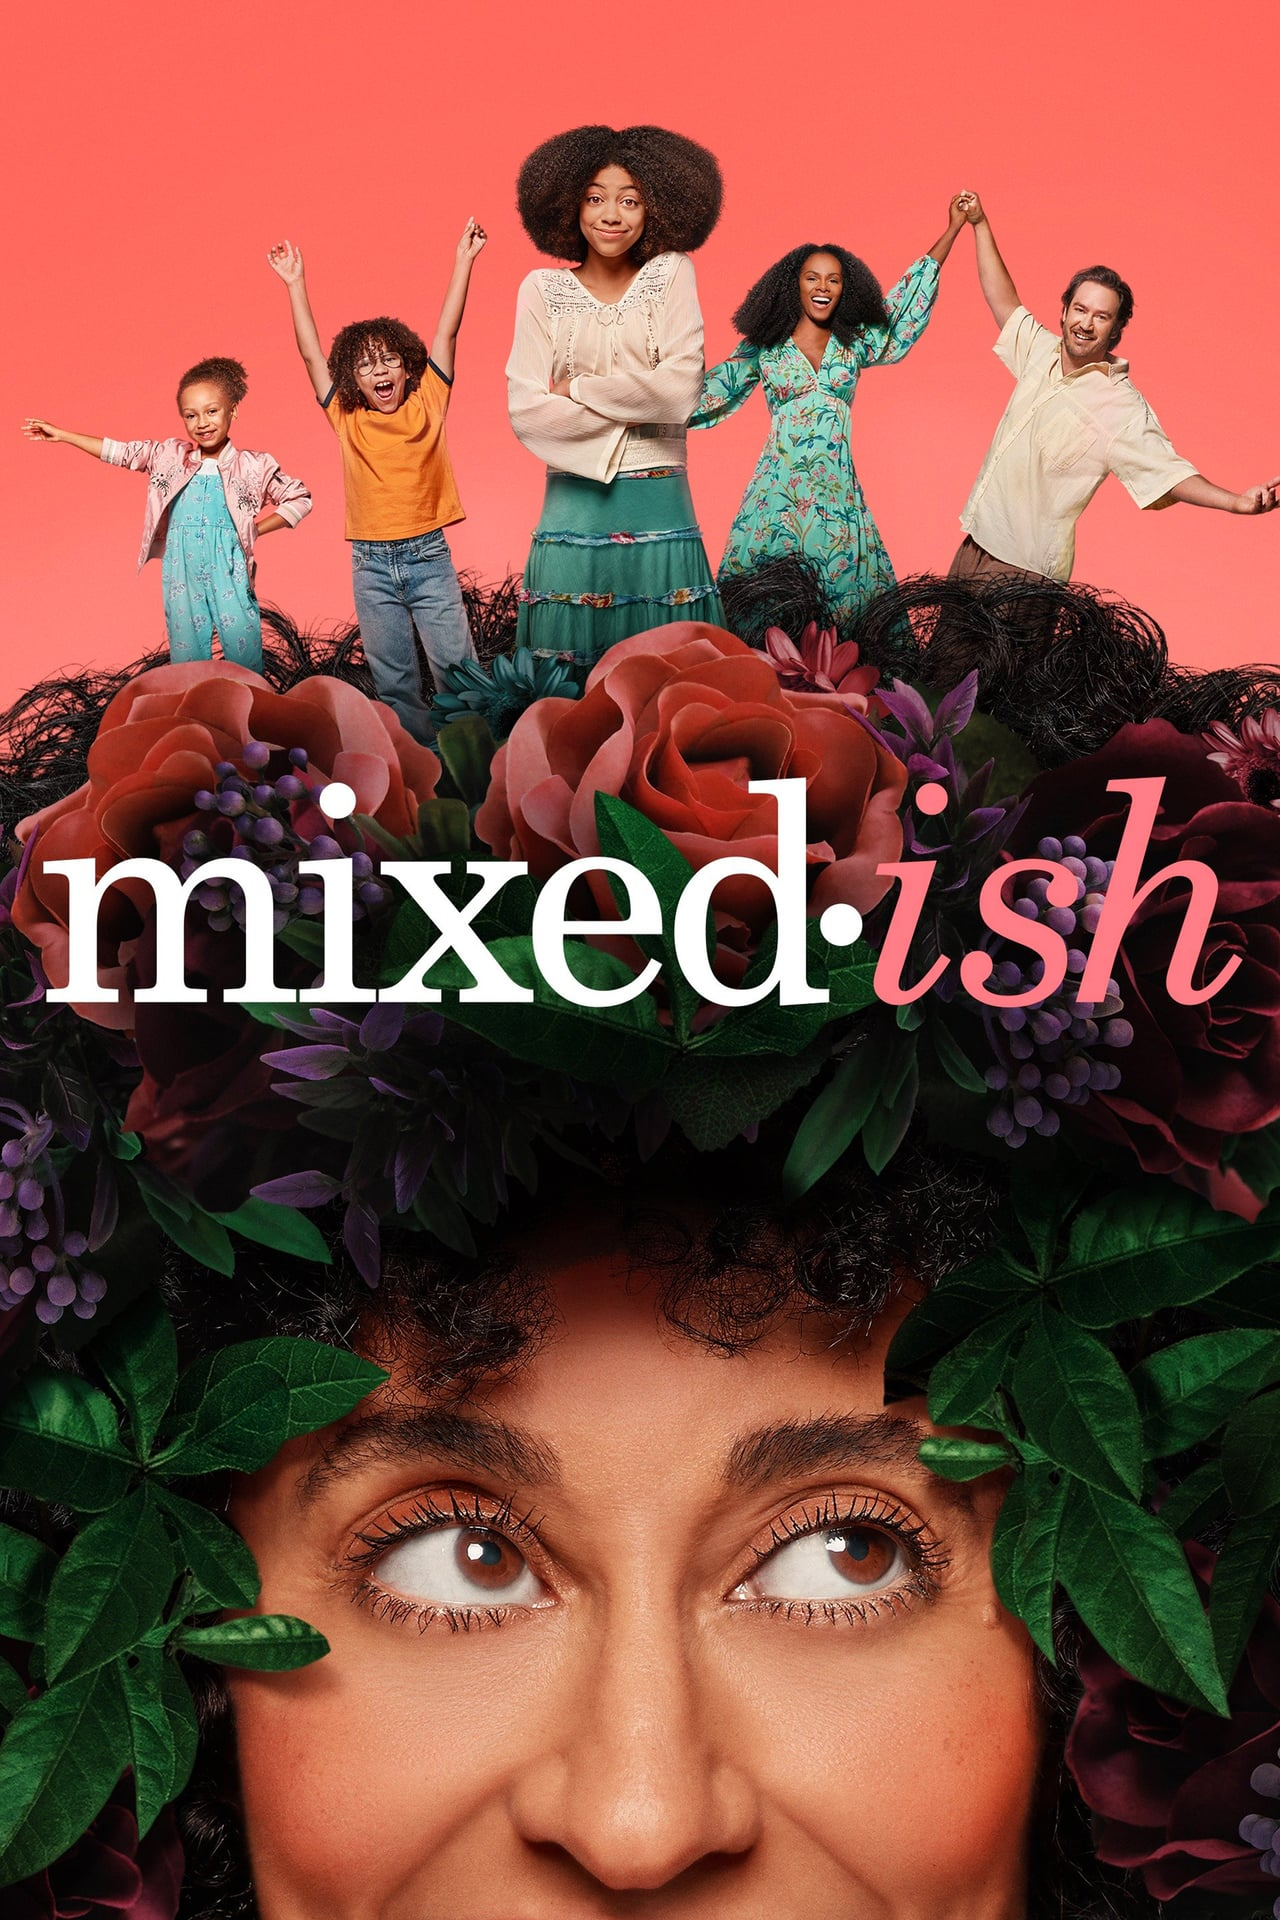 mixed-ish (season 2)